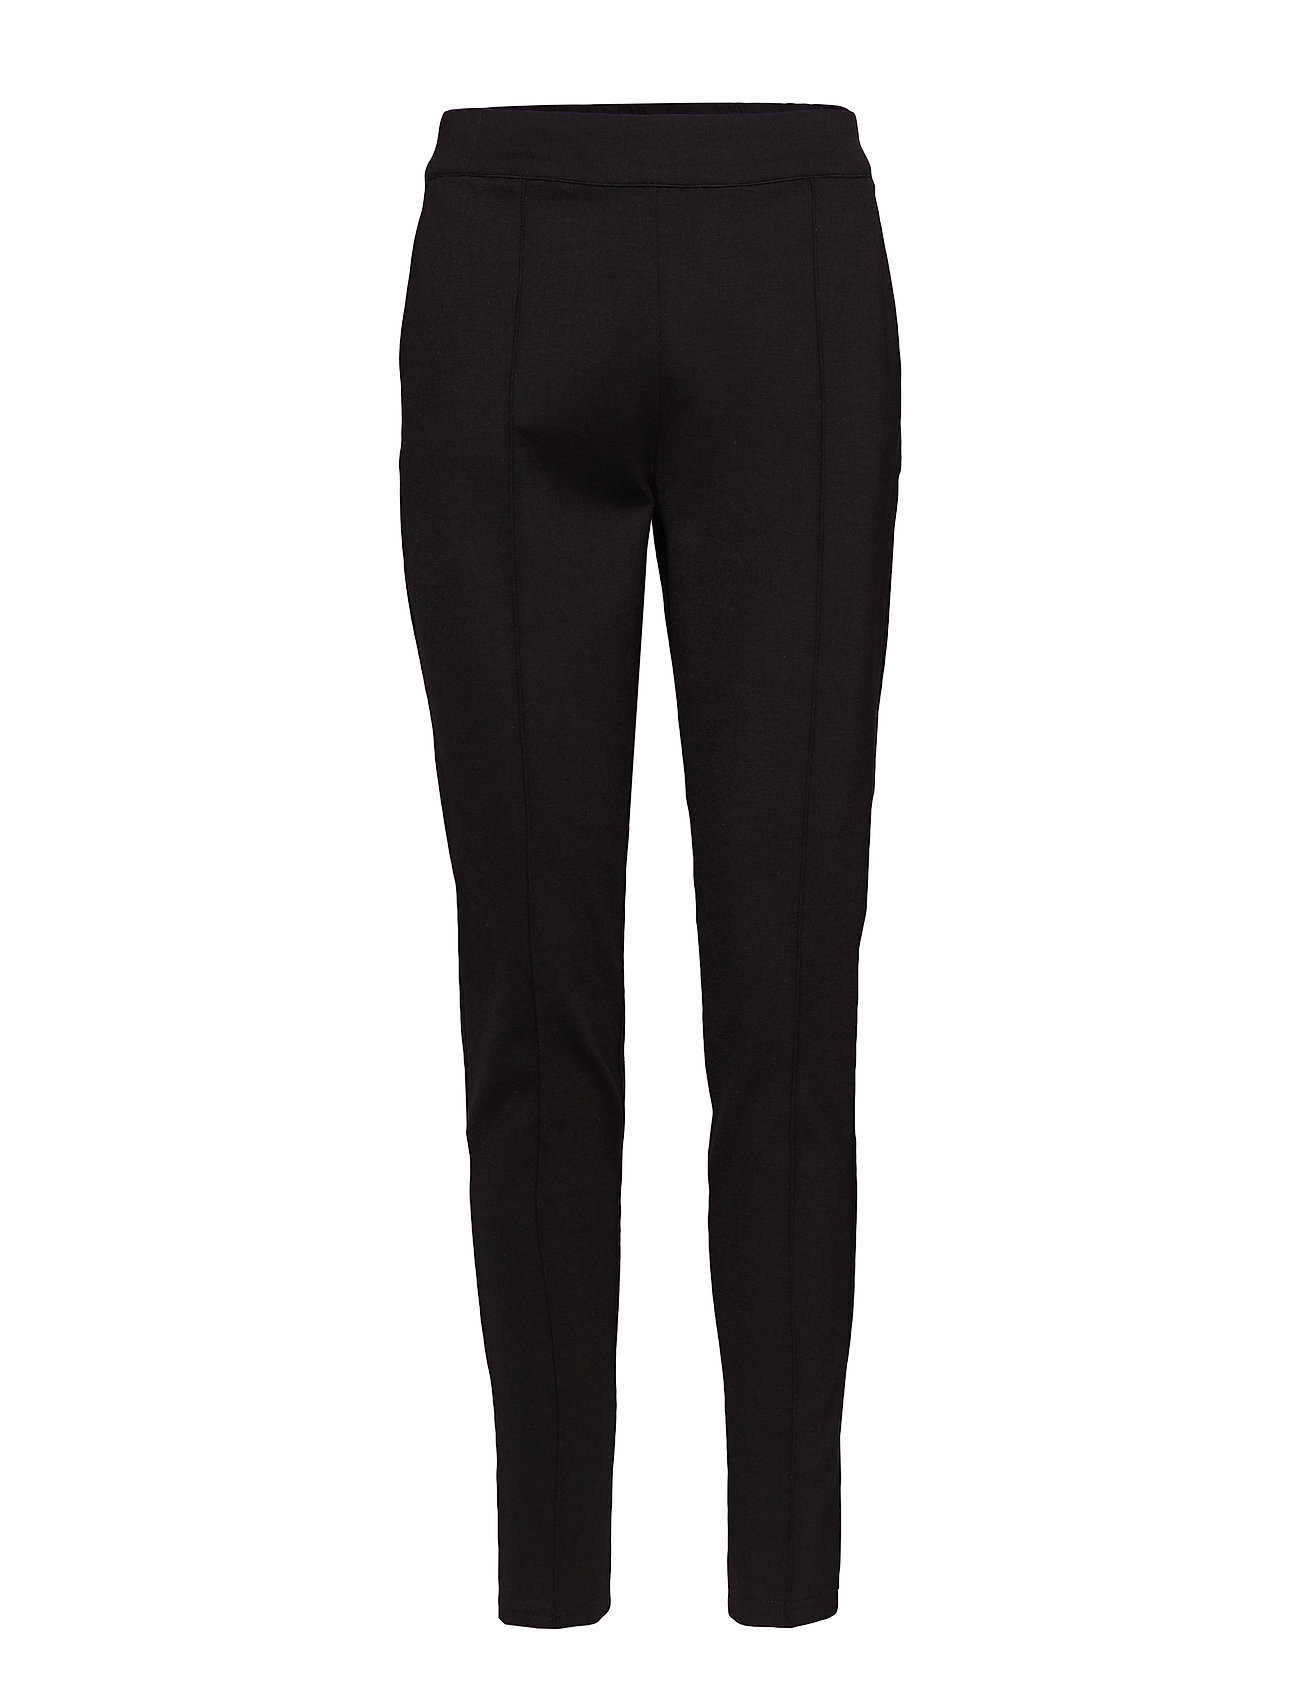 Soft Rebels Freya Basic Pant